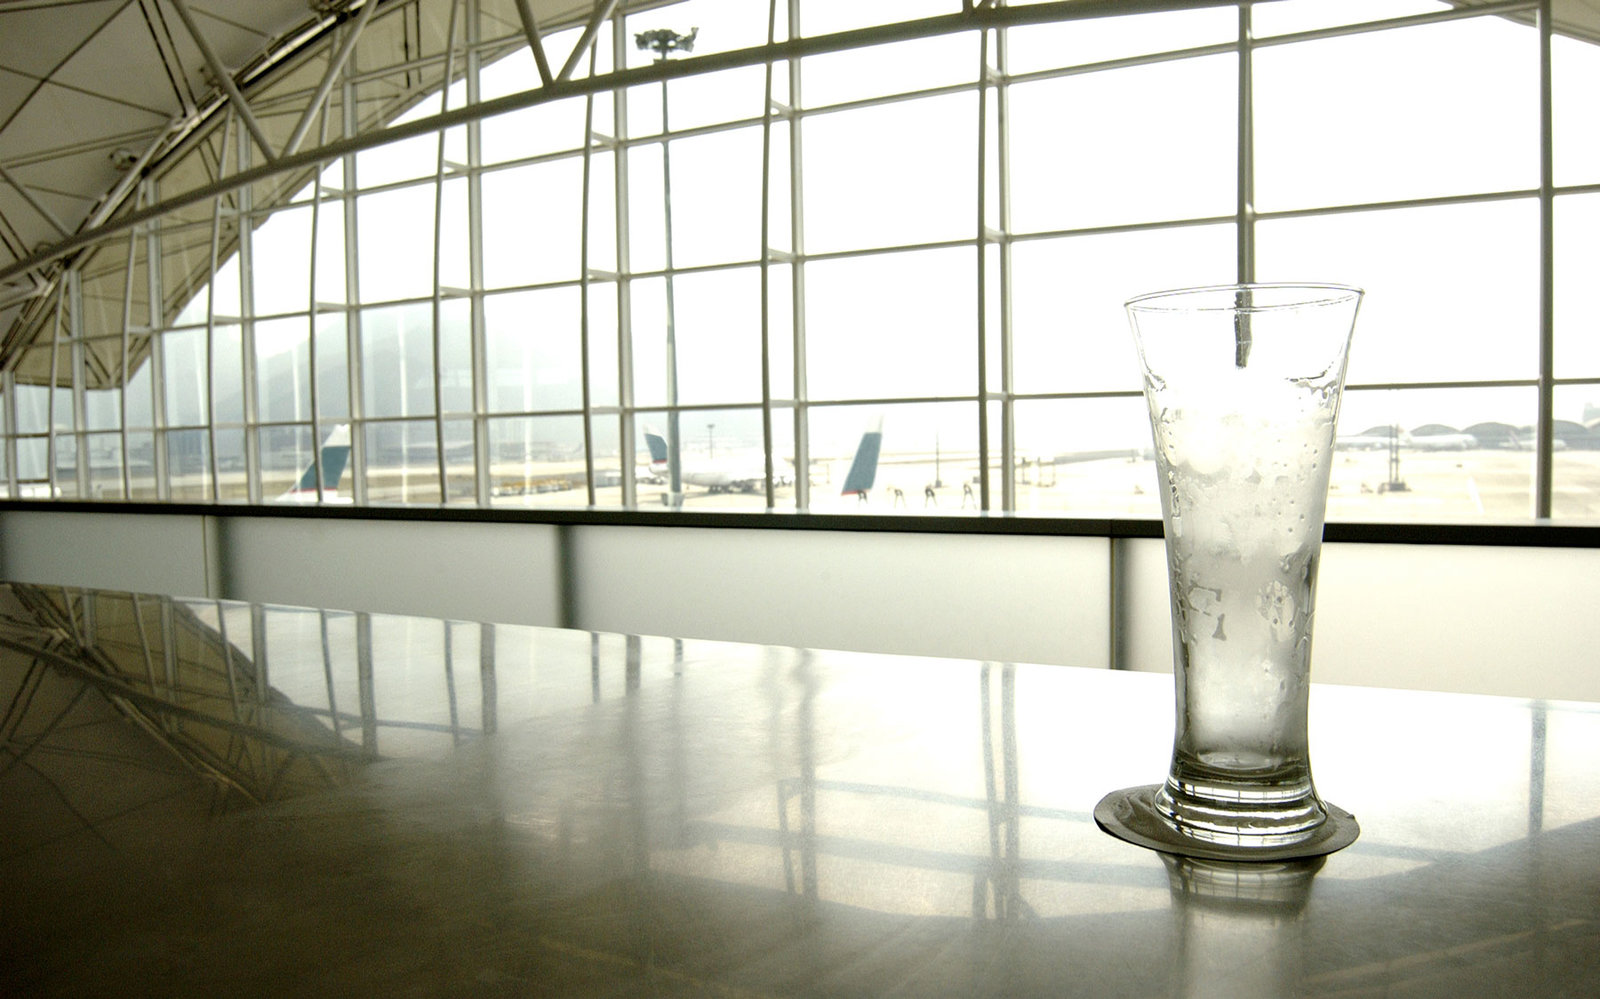 An empty glass sits on a bar at the airport.